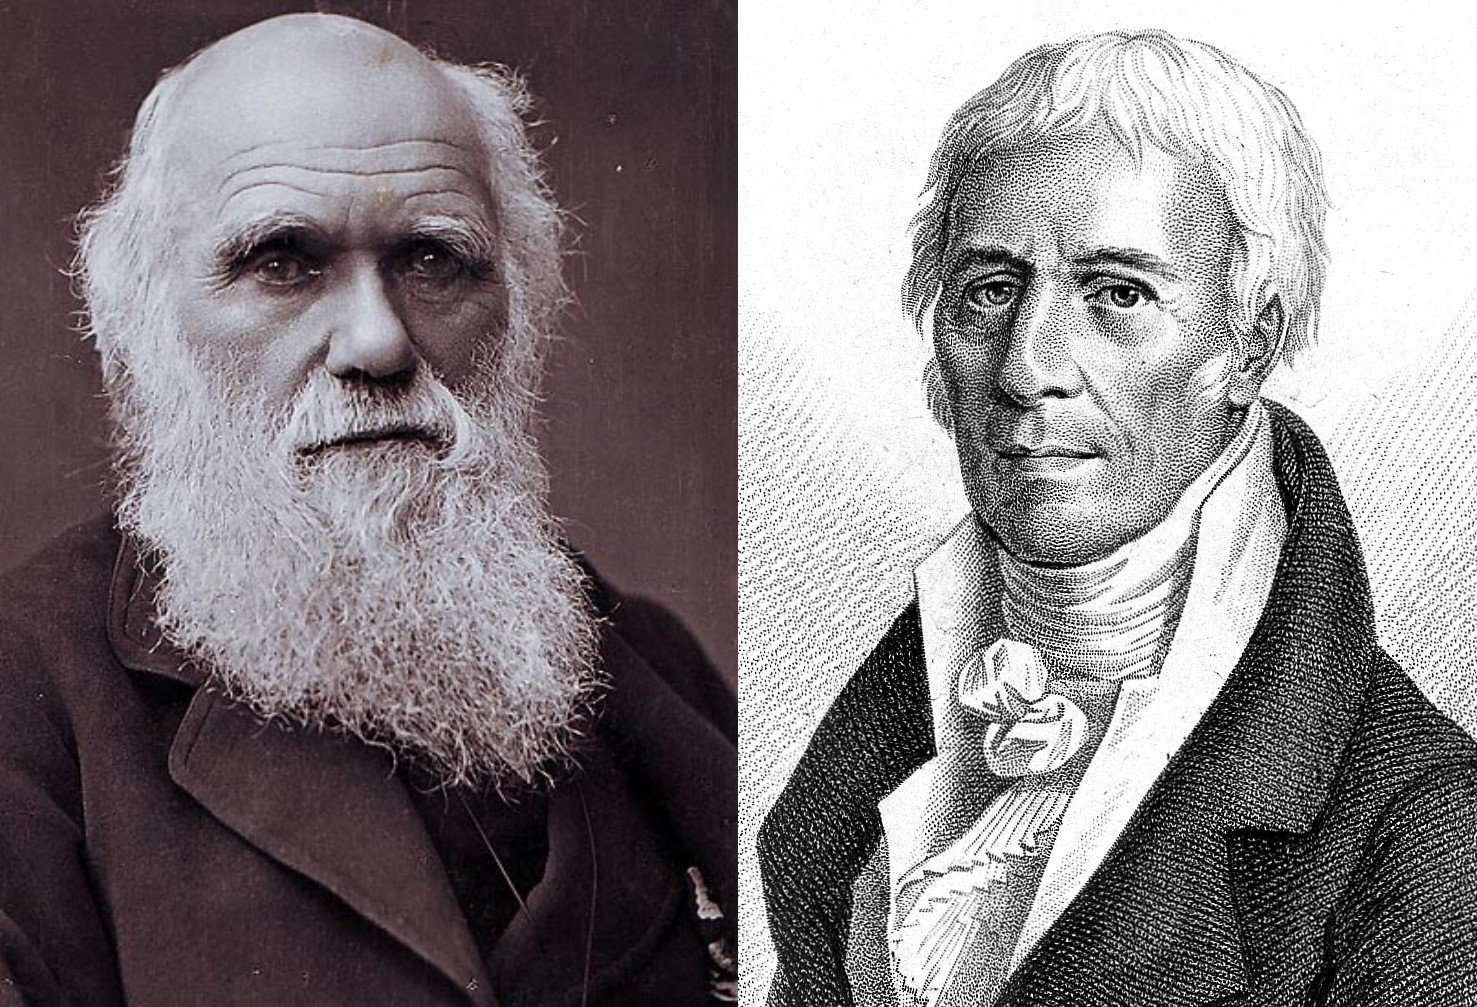 Charles Darwin (left) and Jean-Baptiste Lamarck (right) are the faces of the earliest debate about evolutionary research.